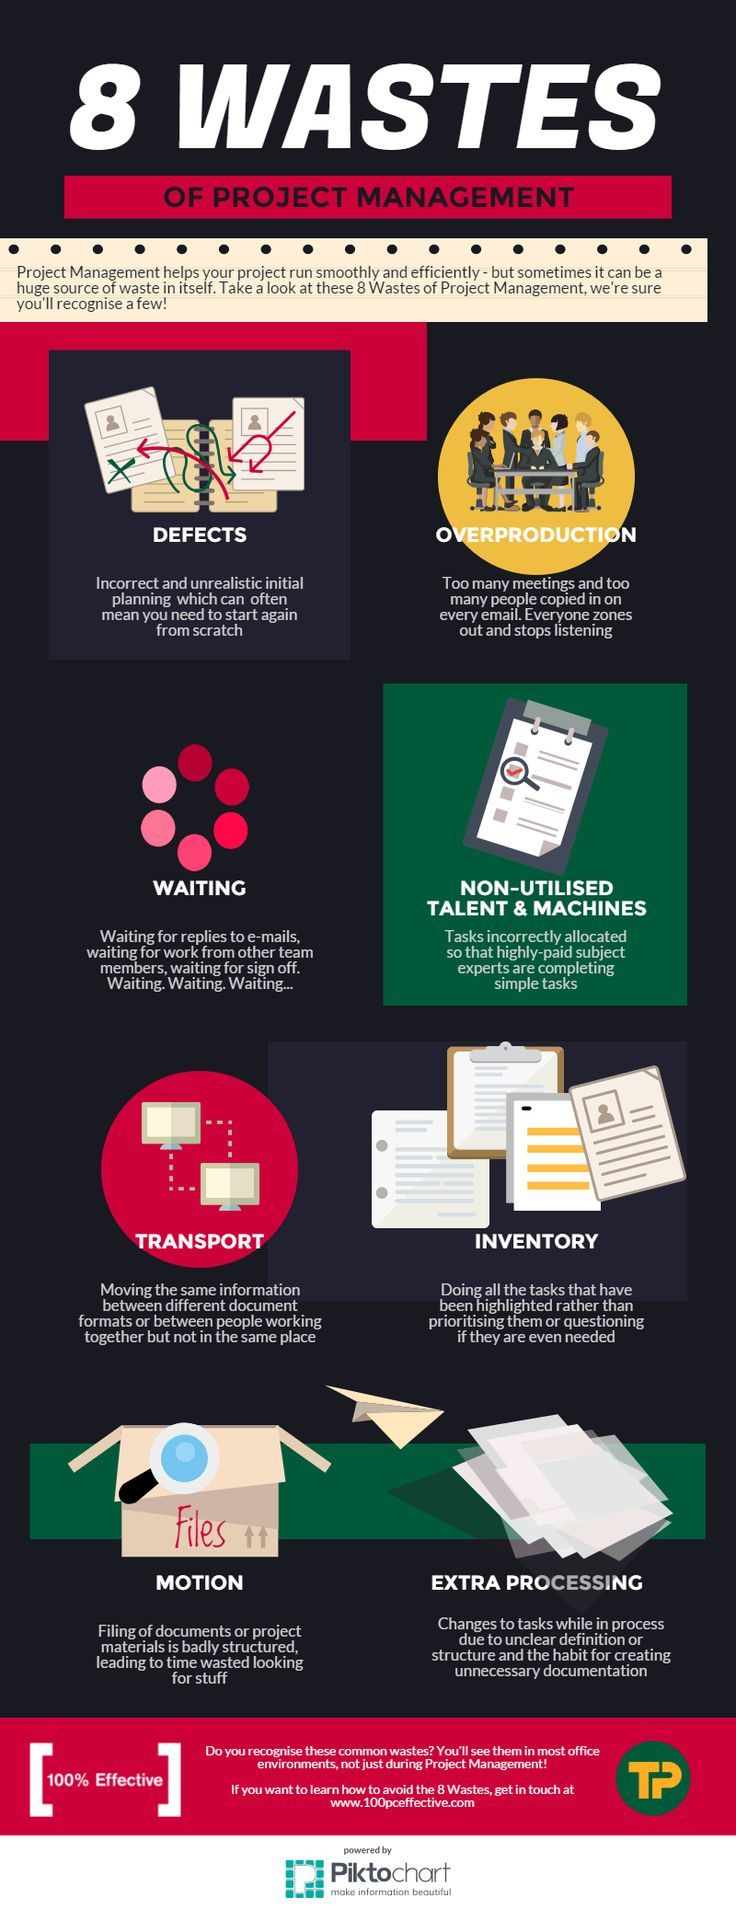 Uncategorized small business ideas small businesses ehow home business ideas to startsmall business ideas bad good ugly ideas - Take A Look At The 8 Wastes Of Project Management Lean Wastes More Lean Six Sigmabusiness